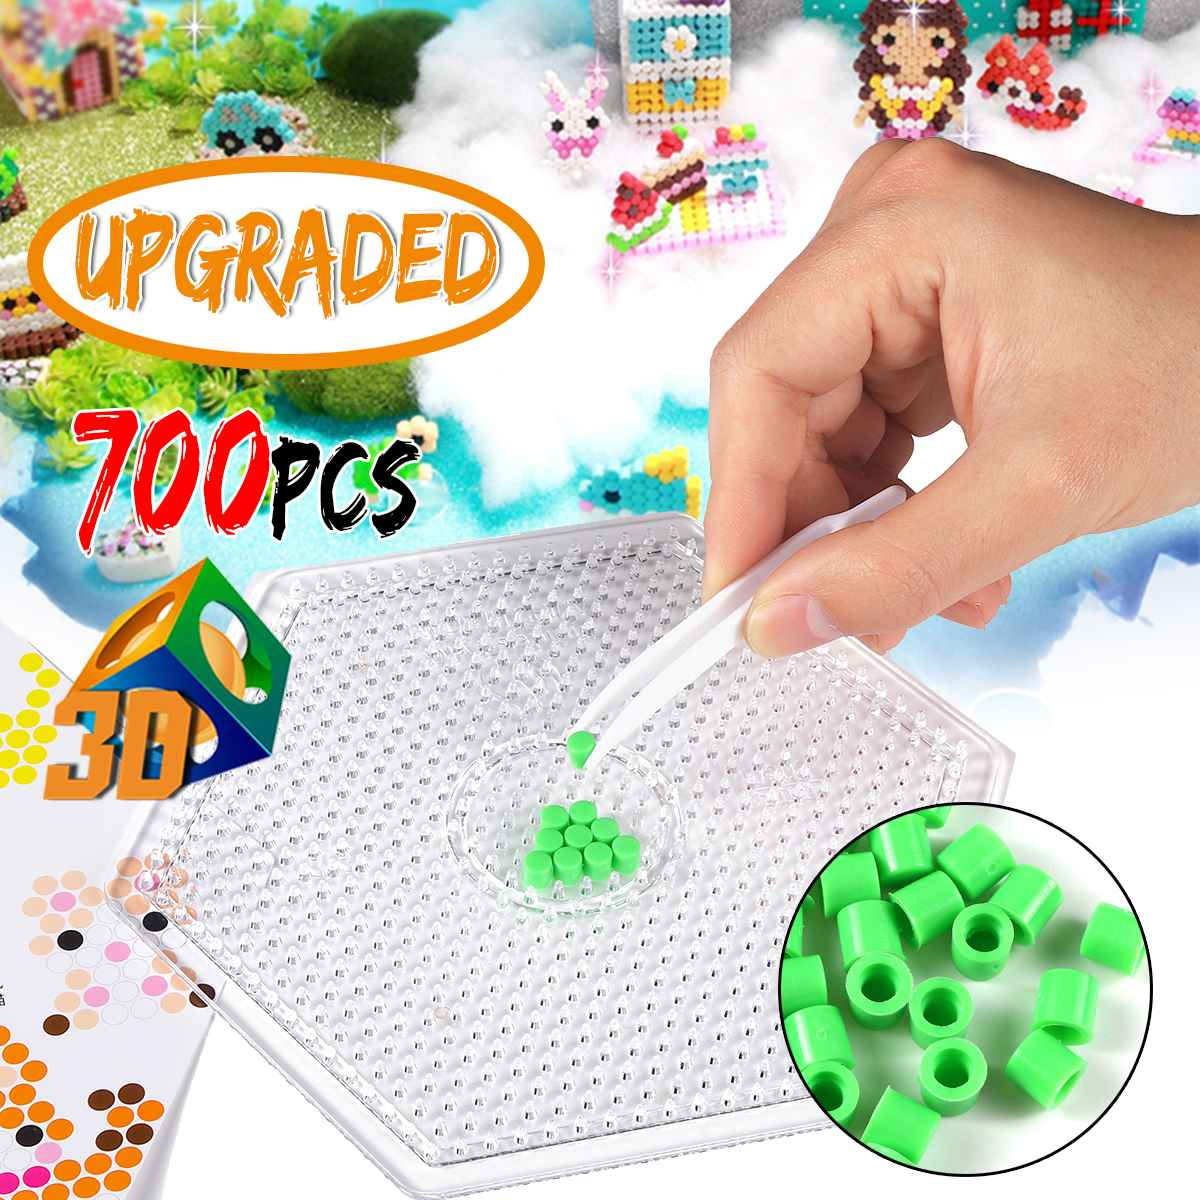 Kalisi 700PCS Upgraded DIY Magic Water Beads Toys Sticky Fuse Aquas Cylindrical Educational Kids Funny Toy Arts Crafts Gift